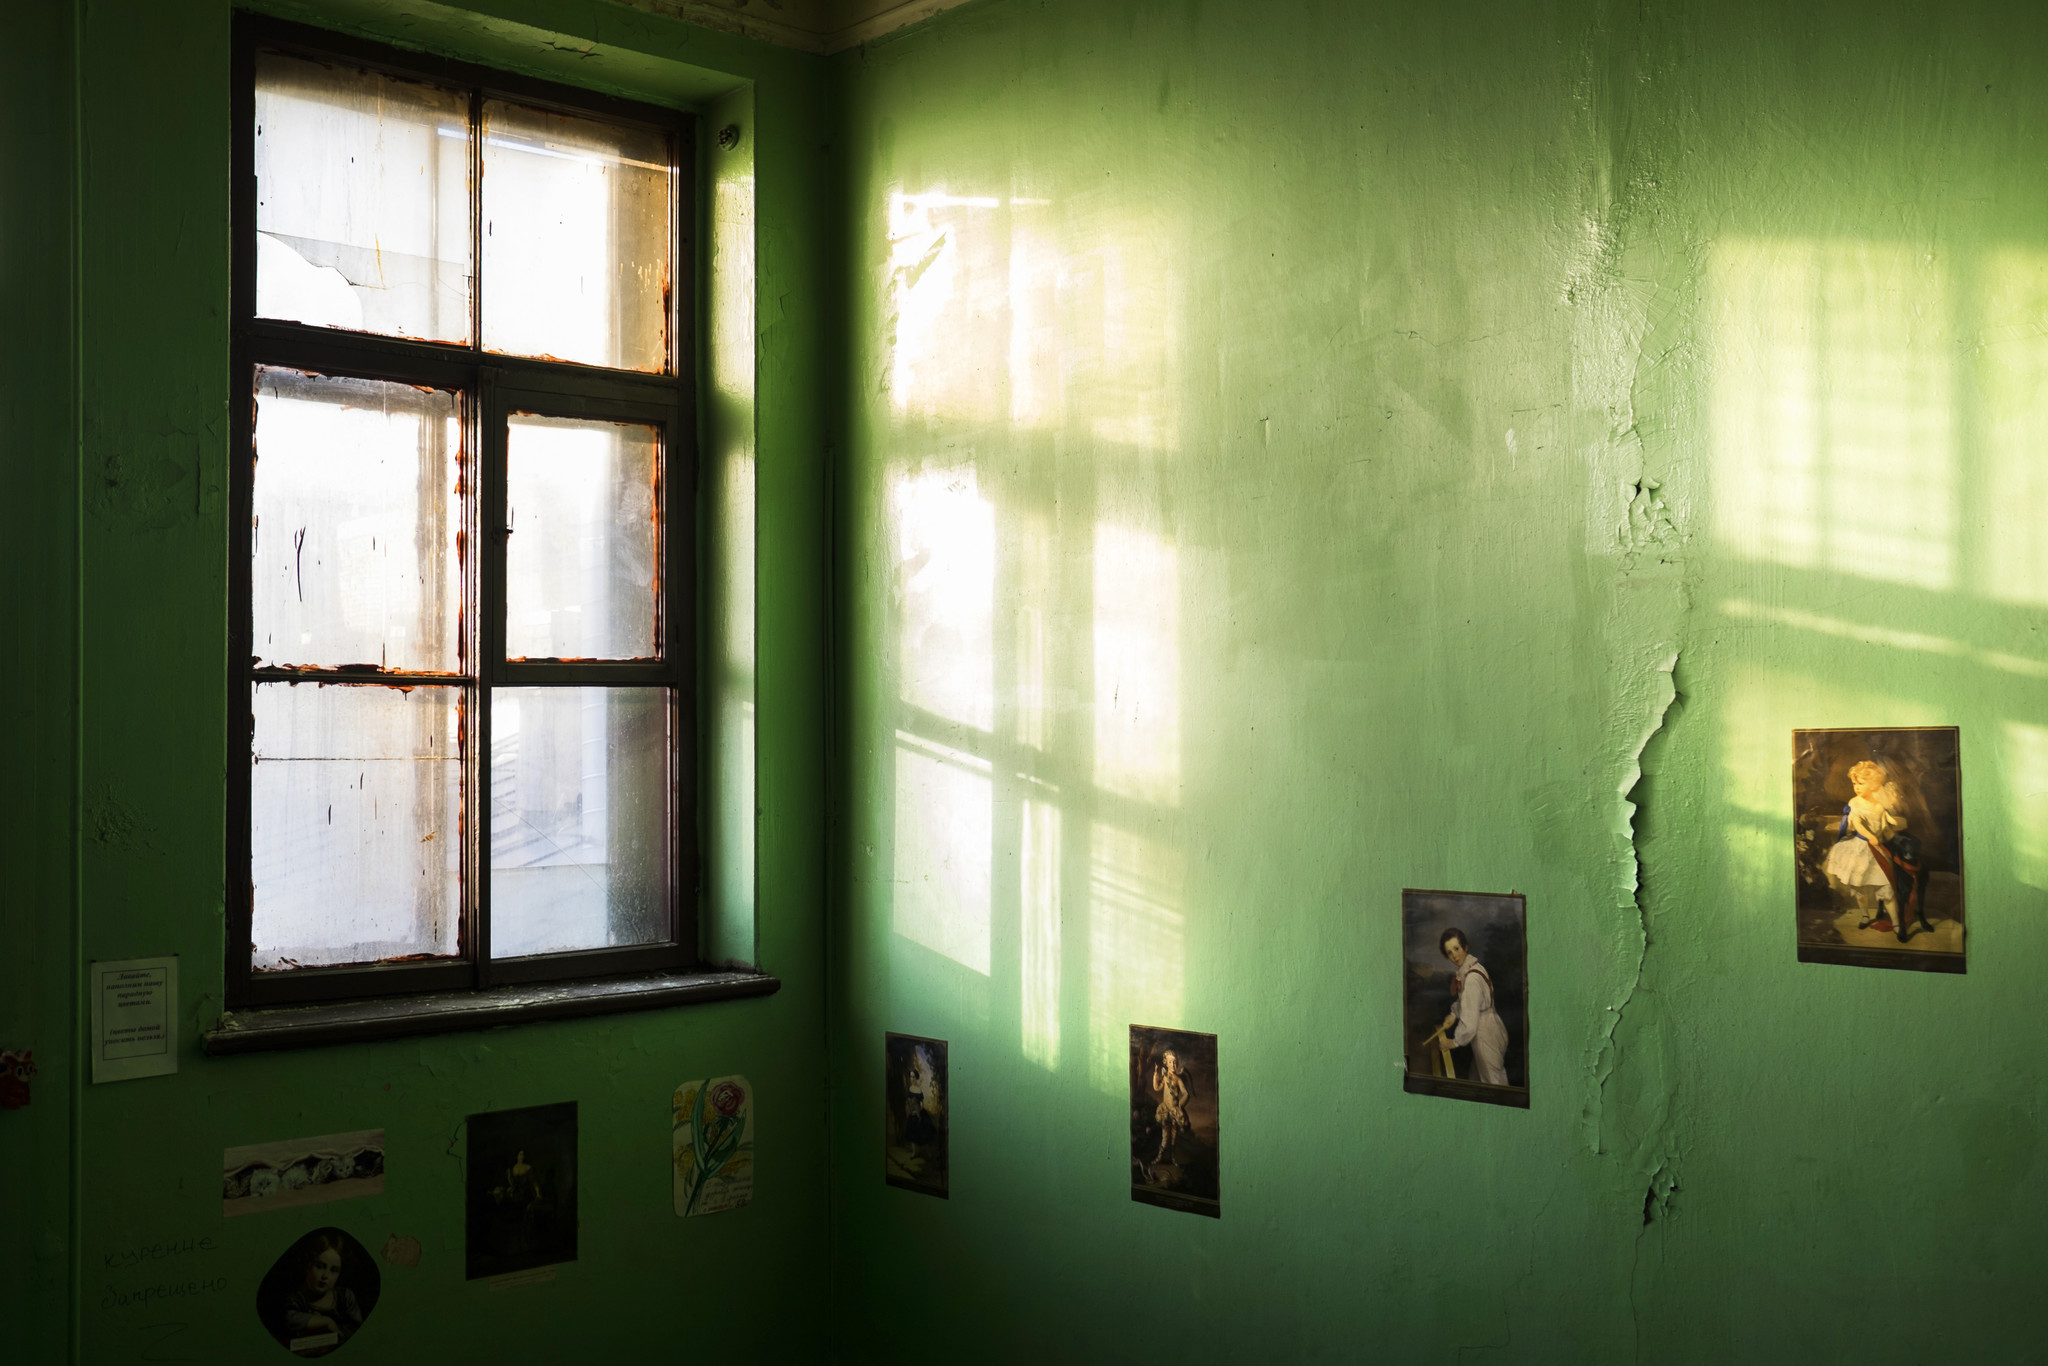 A stairwell inside the building where Lena Mikhaylovskaya's flat is located.